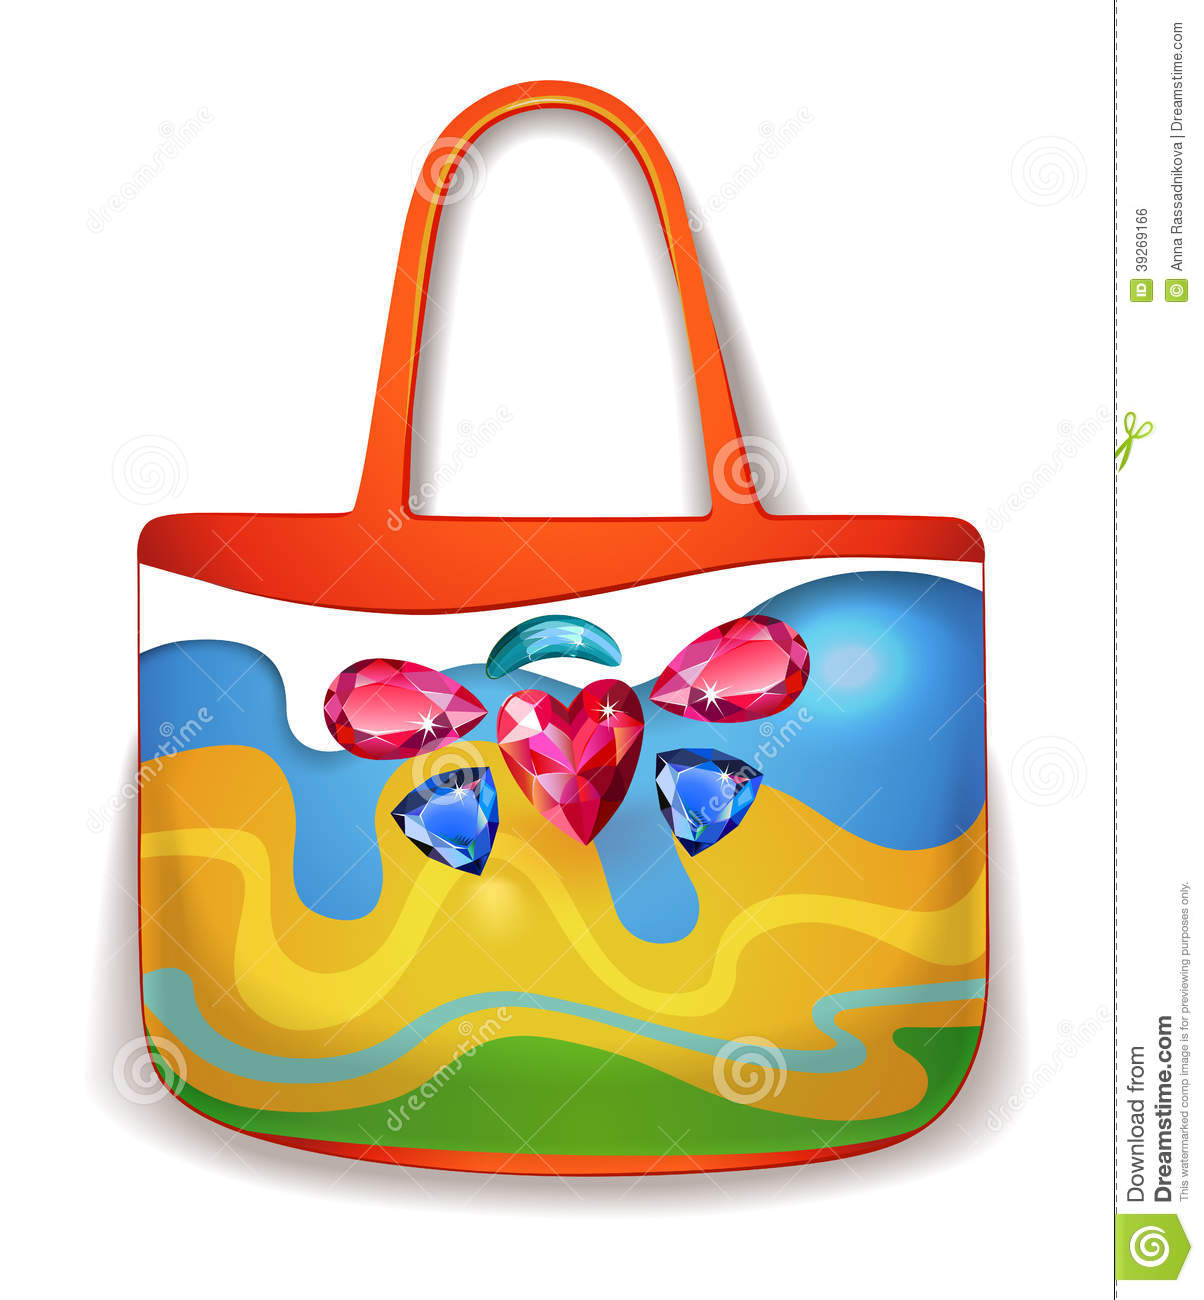 Wonderful bright ladies handbag for summer holidays isolated on white  (vector). EPS10 file available. 7eb5ce8f815b4